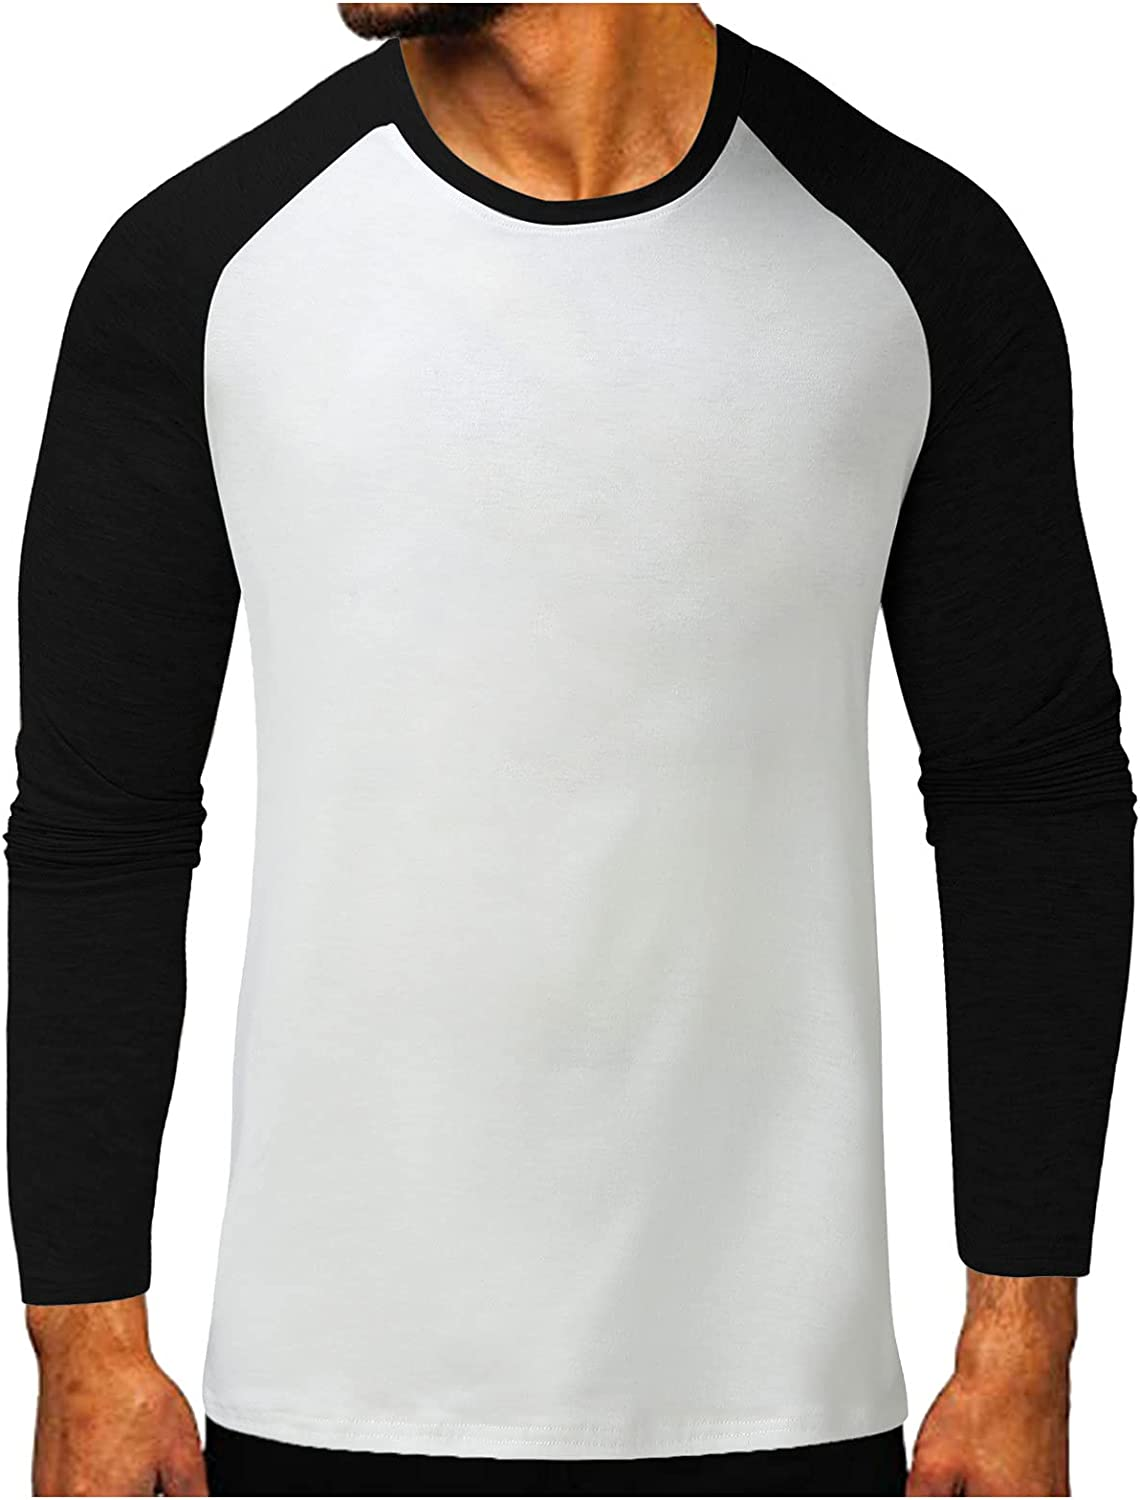 Huangse Mens Color Block T-Shirt Long Sleeve Round Neck Button Down Tees Blouse Beach Yoga Loose Fit Pullover Tops